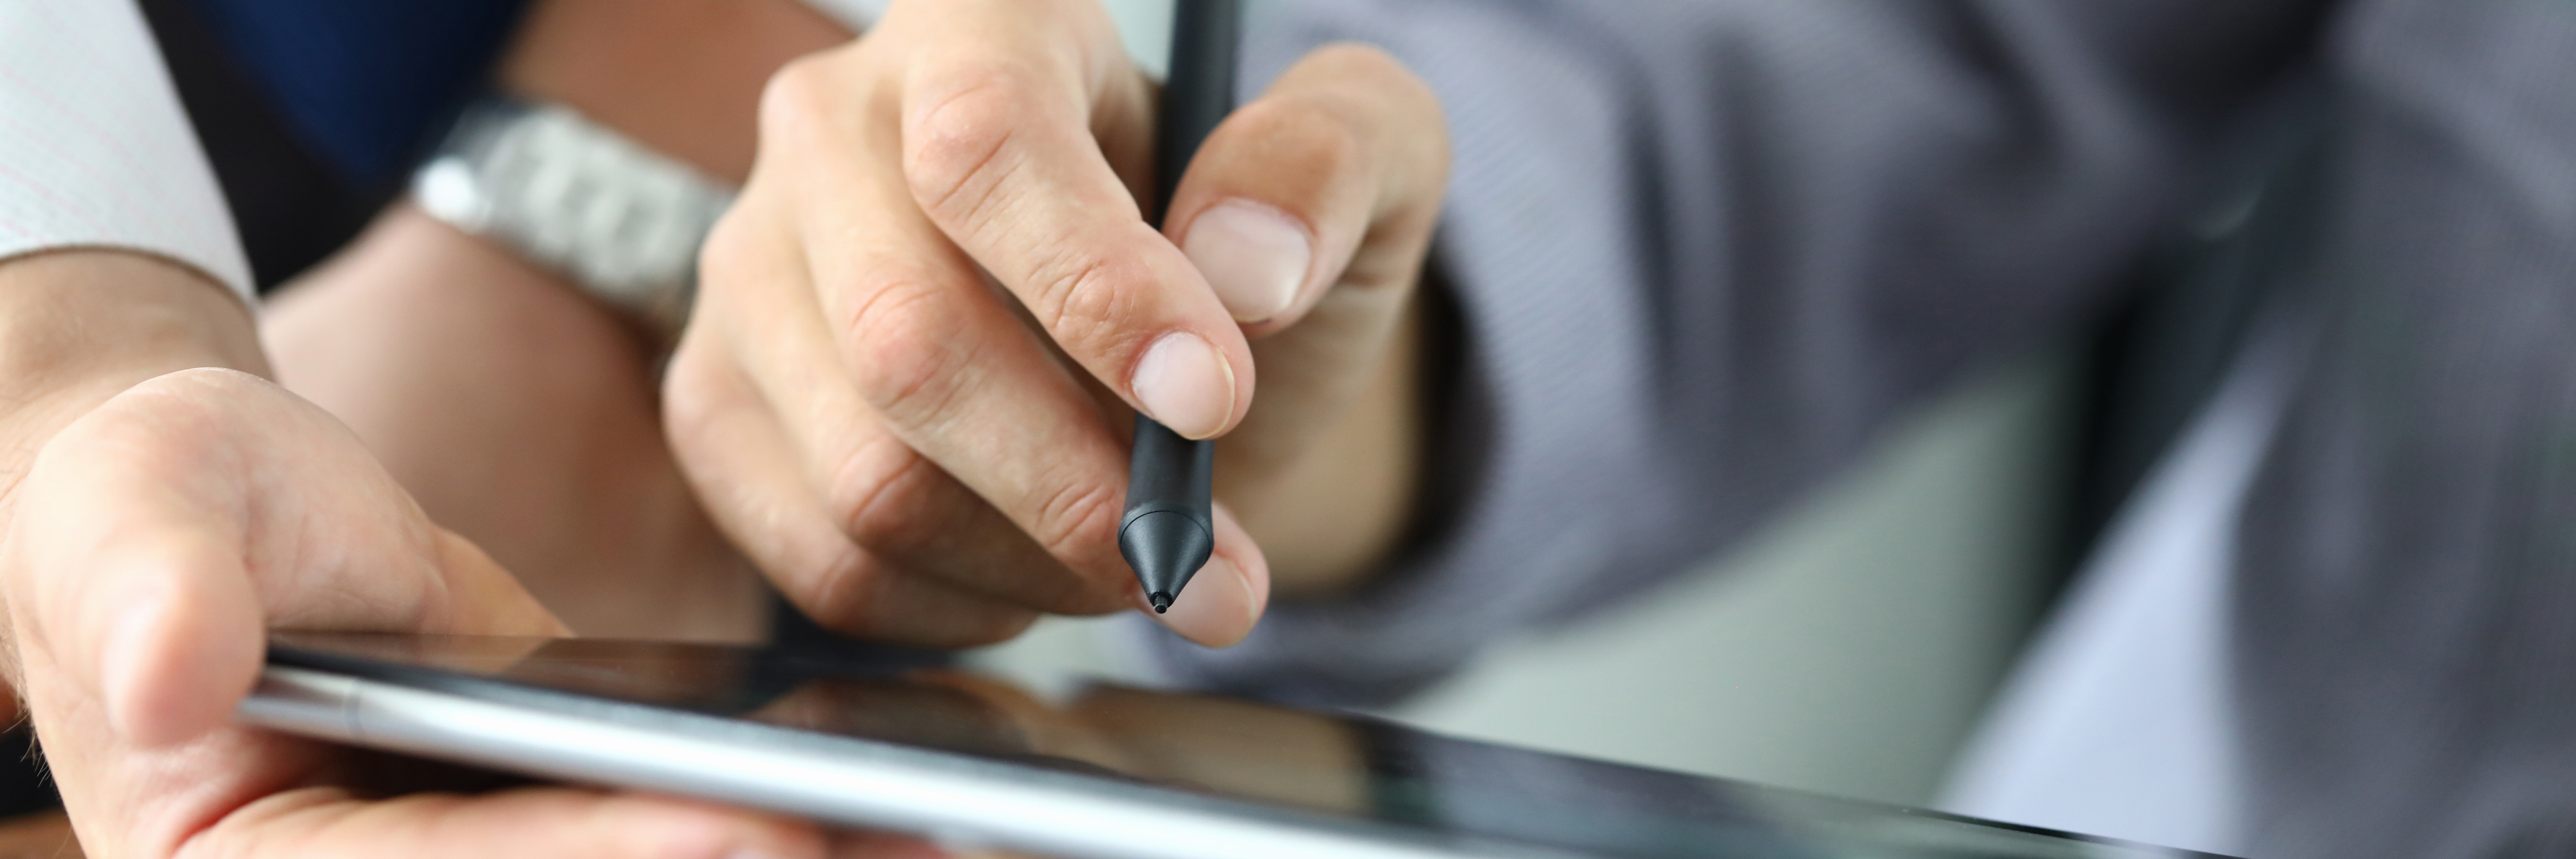 Image showing someone signing on a tablet. Electronic signatures in Brazil are being increasingly used by individuals & businesses. Learn about the legality of use with this guide.